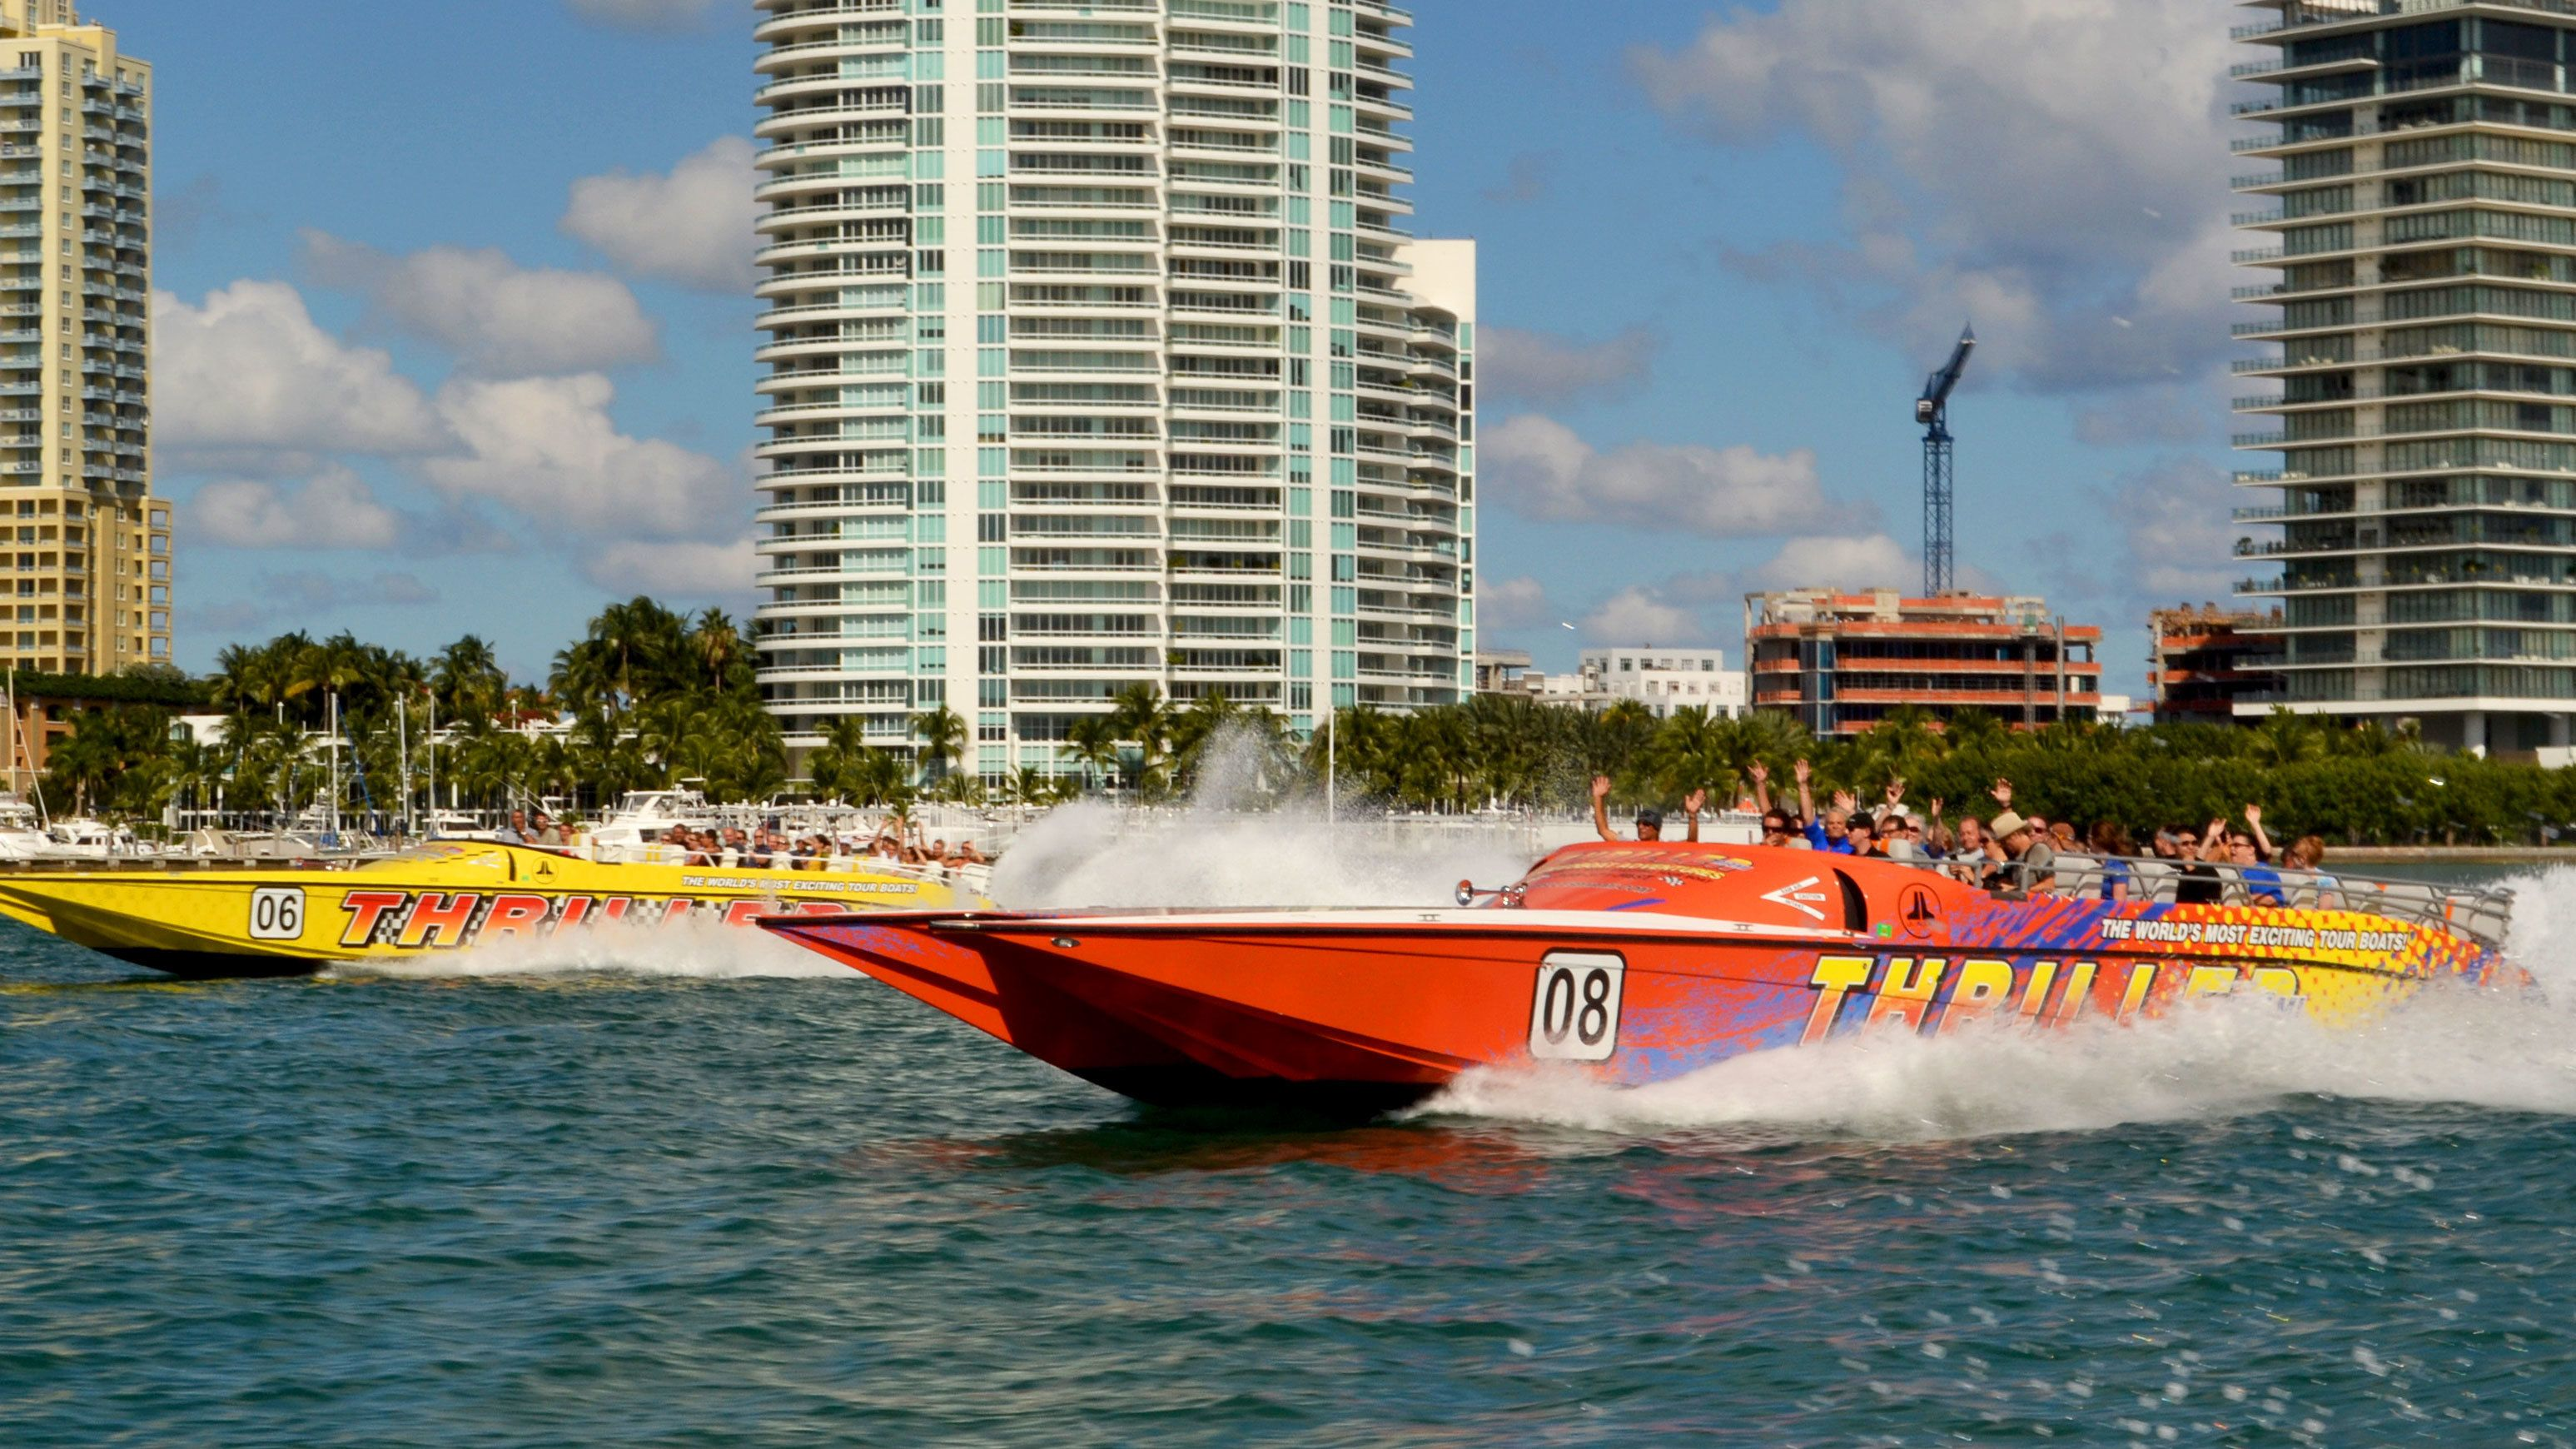 Two Thriller speedboats race through the waters off Miami